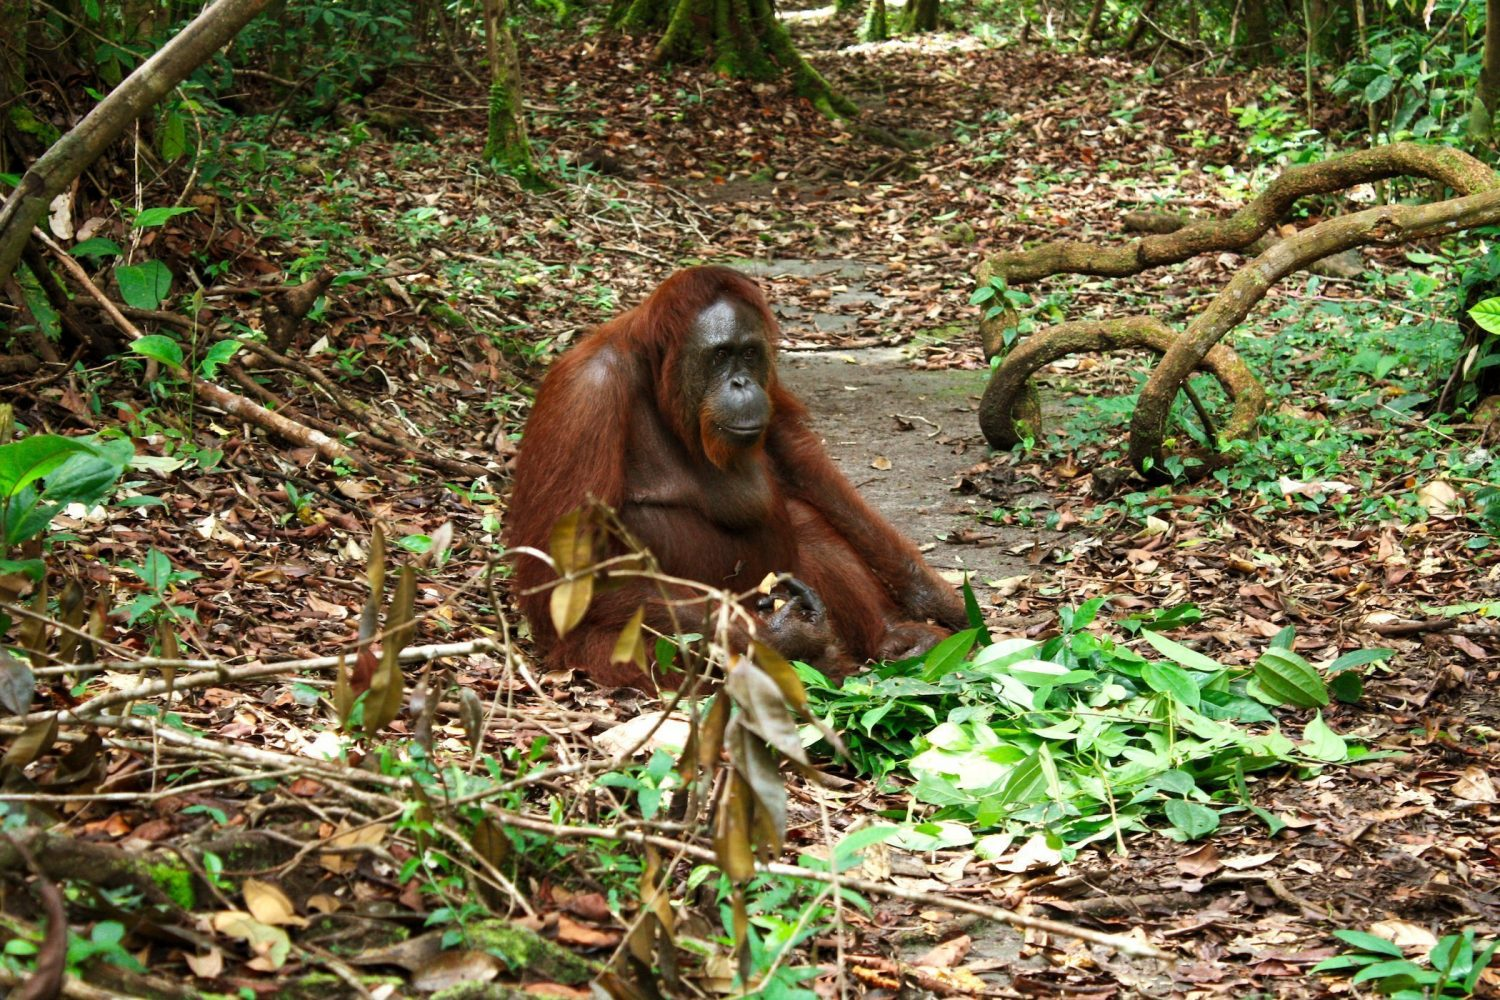 Orangutan in the lowland rainforest of Kalimantan